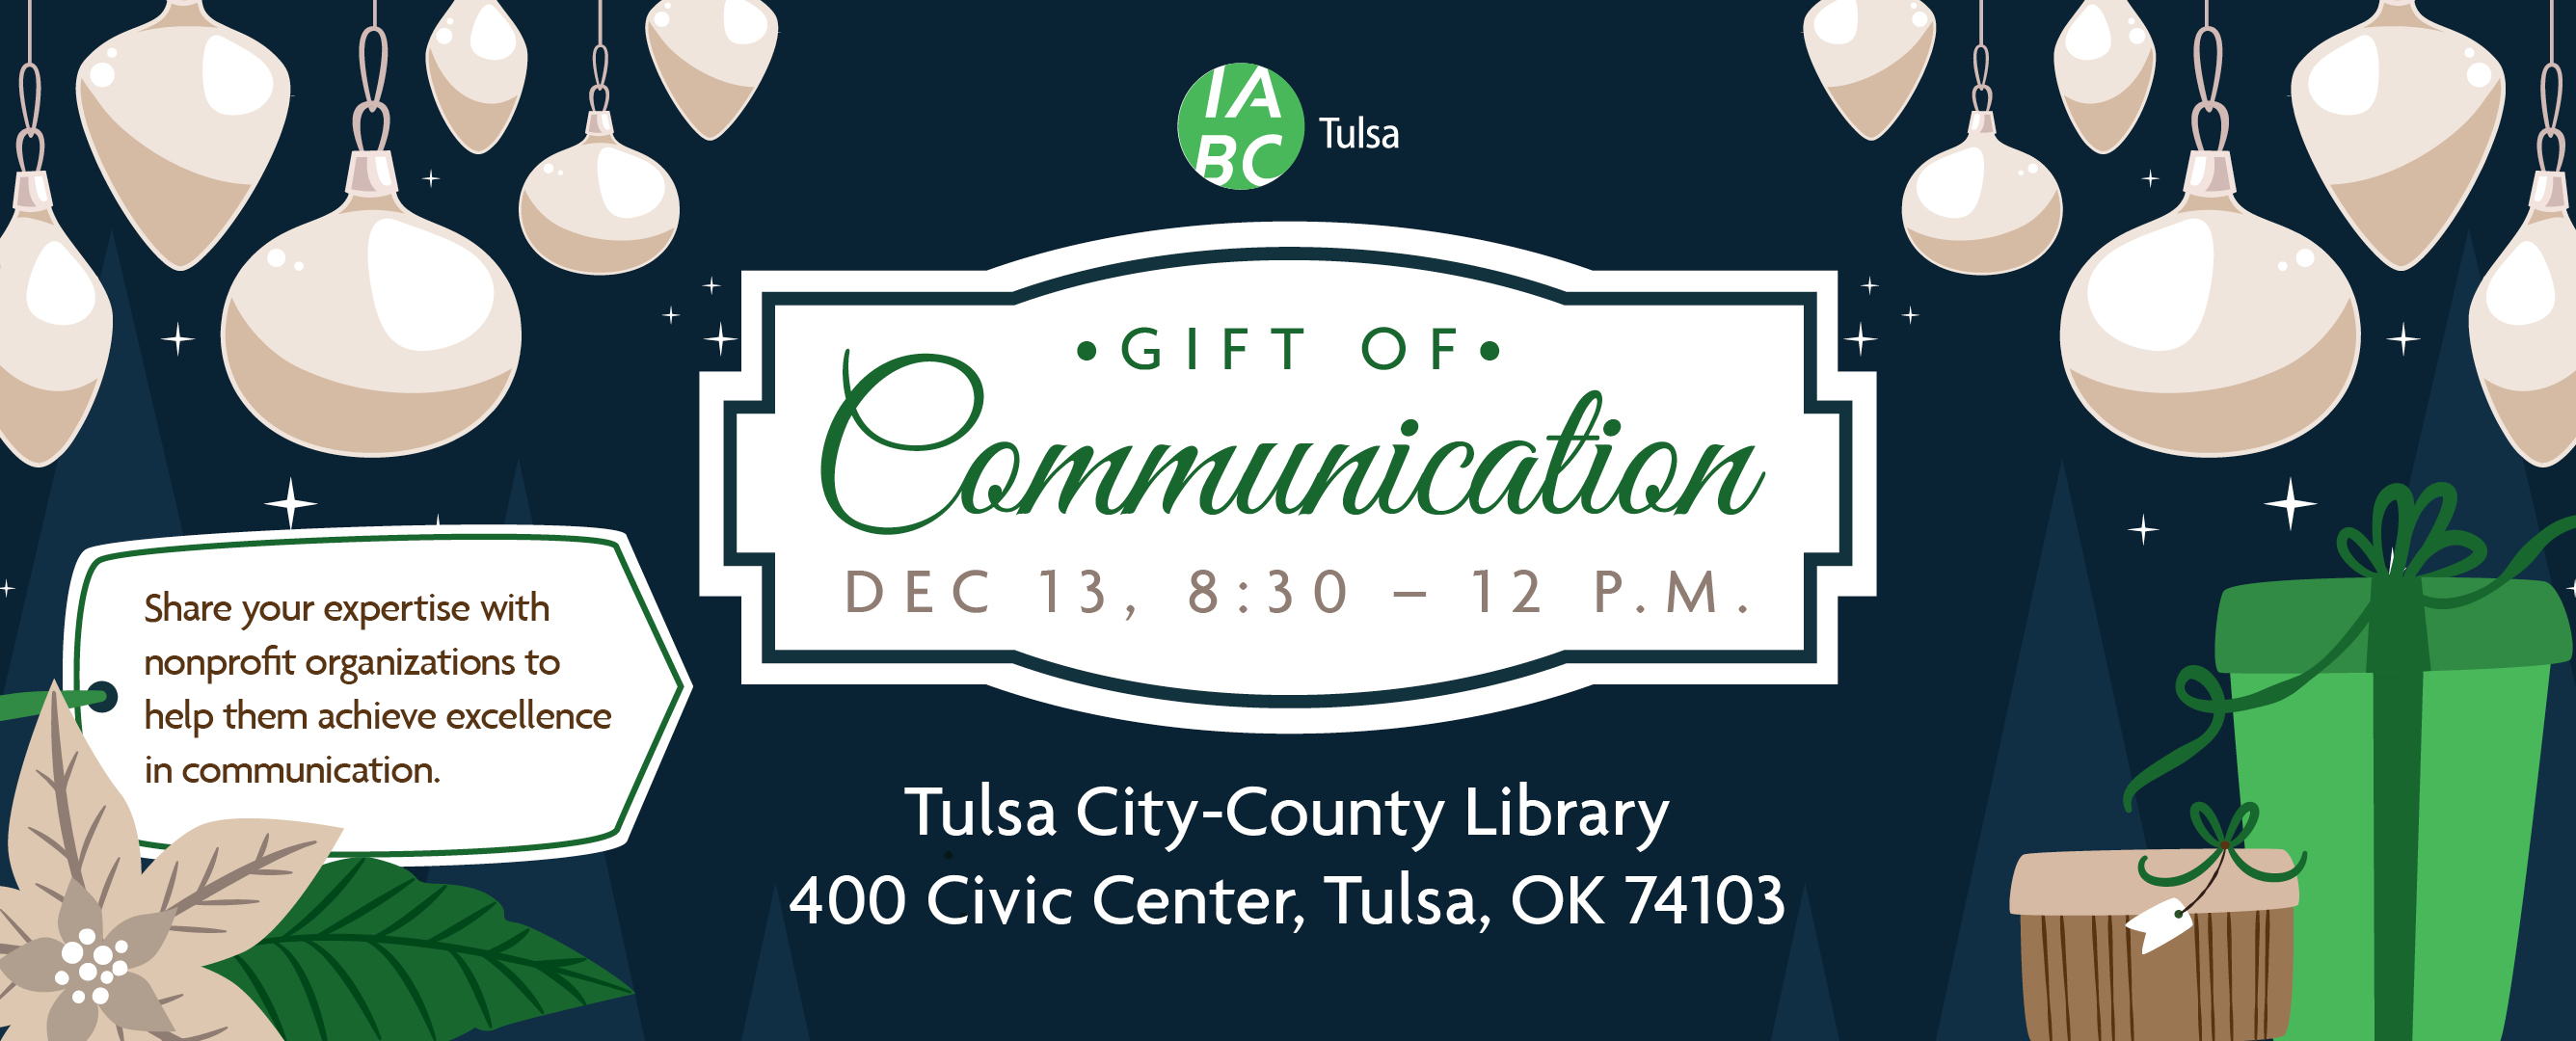 Save the Date: Gift of Communications